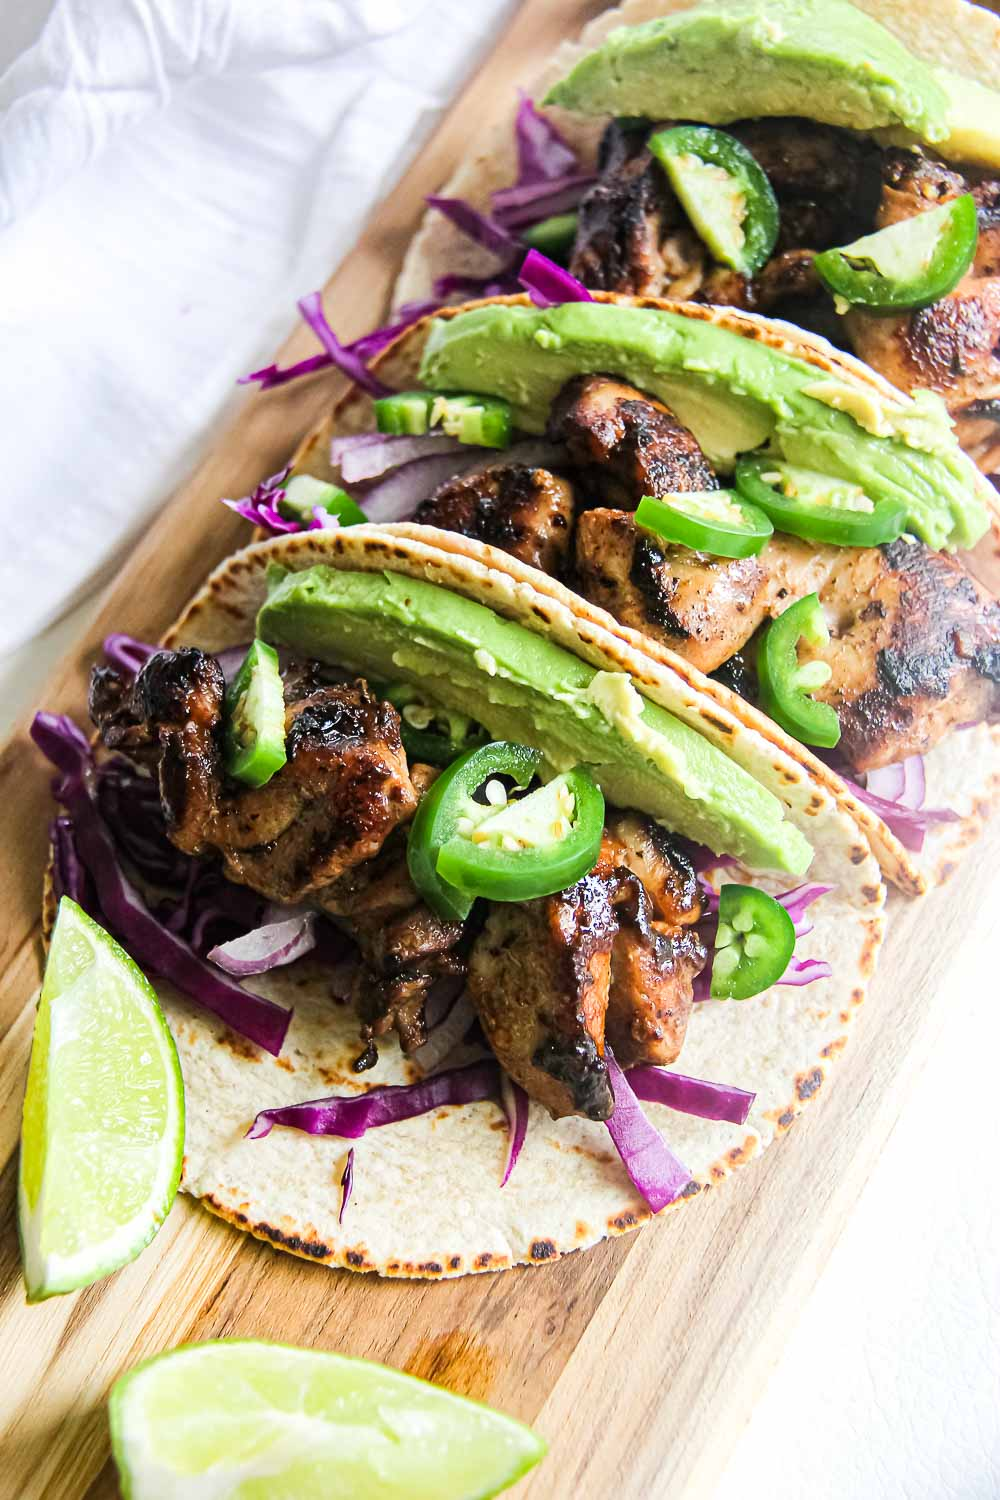 Kick your Taco Tuesday or Cinco de Mayo up a notch with these pineapple lime chicken tacos that are hearty and full of flavors!